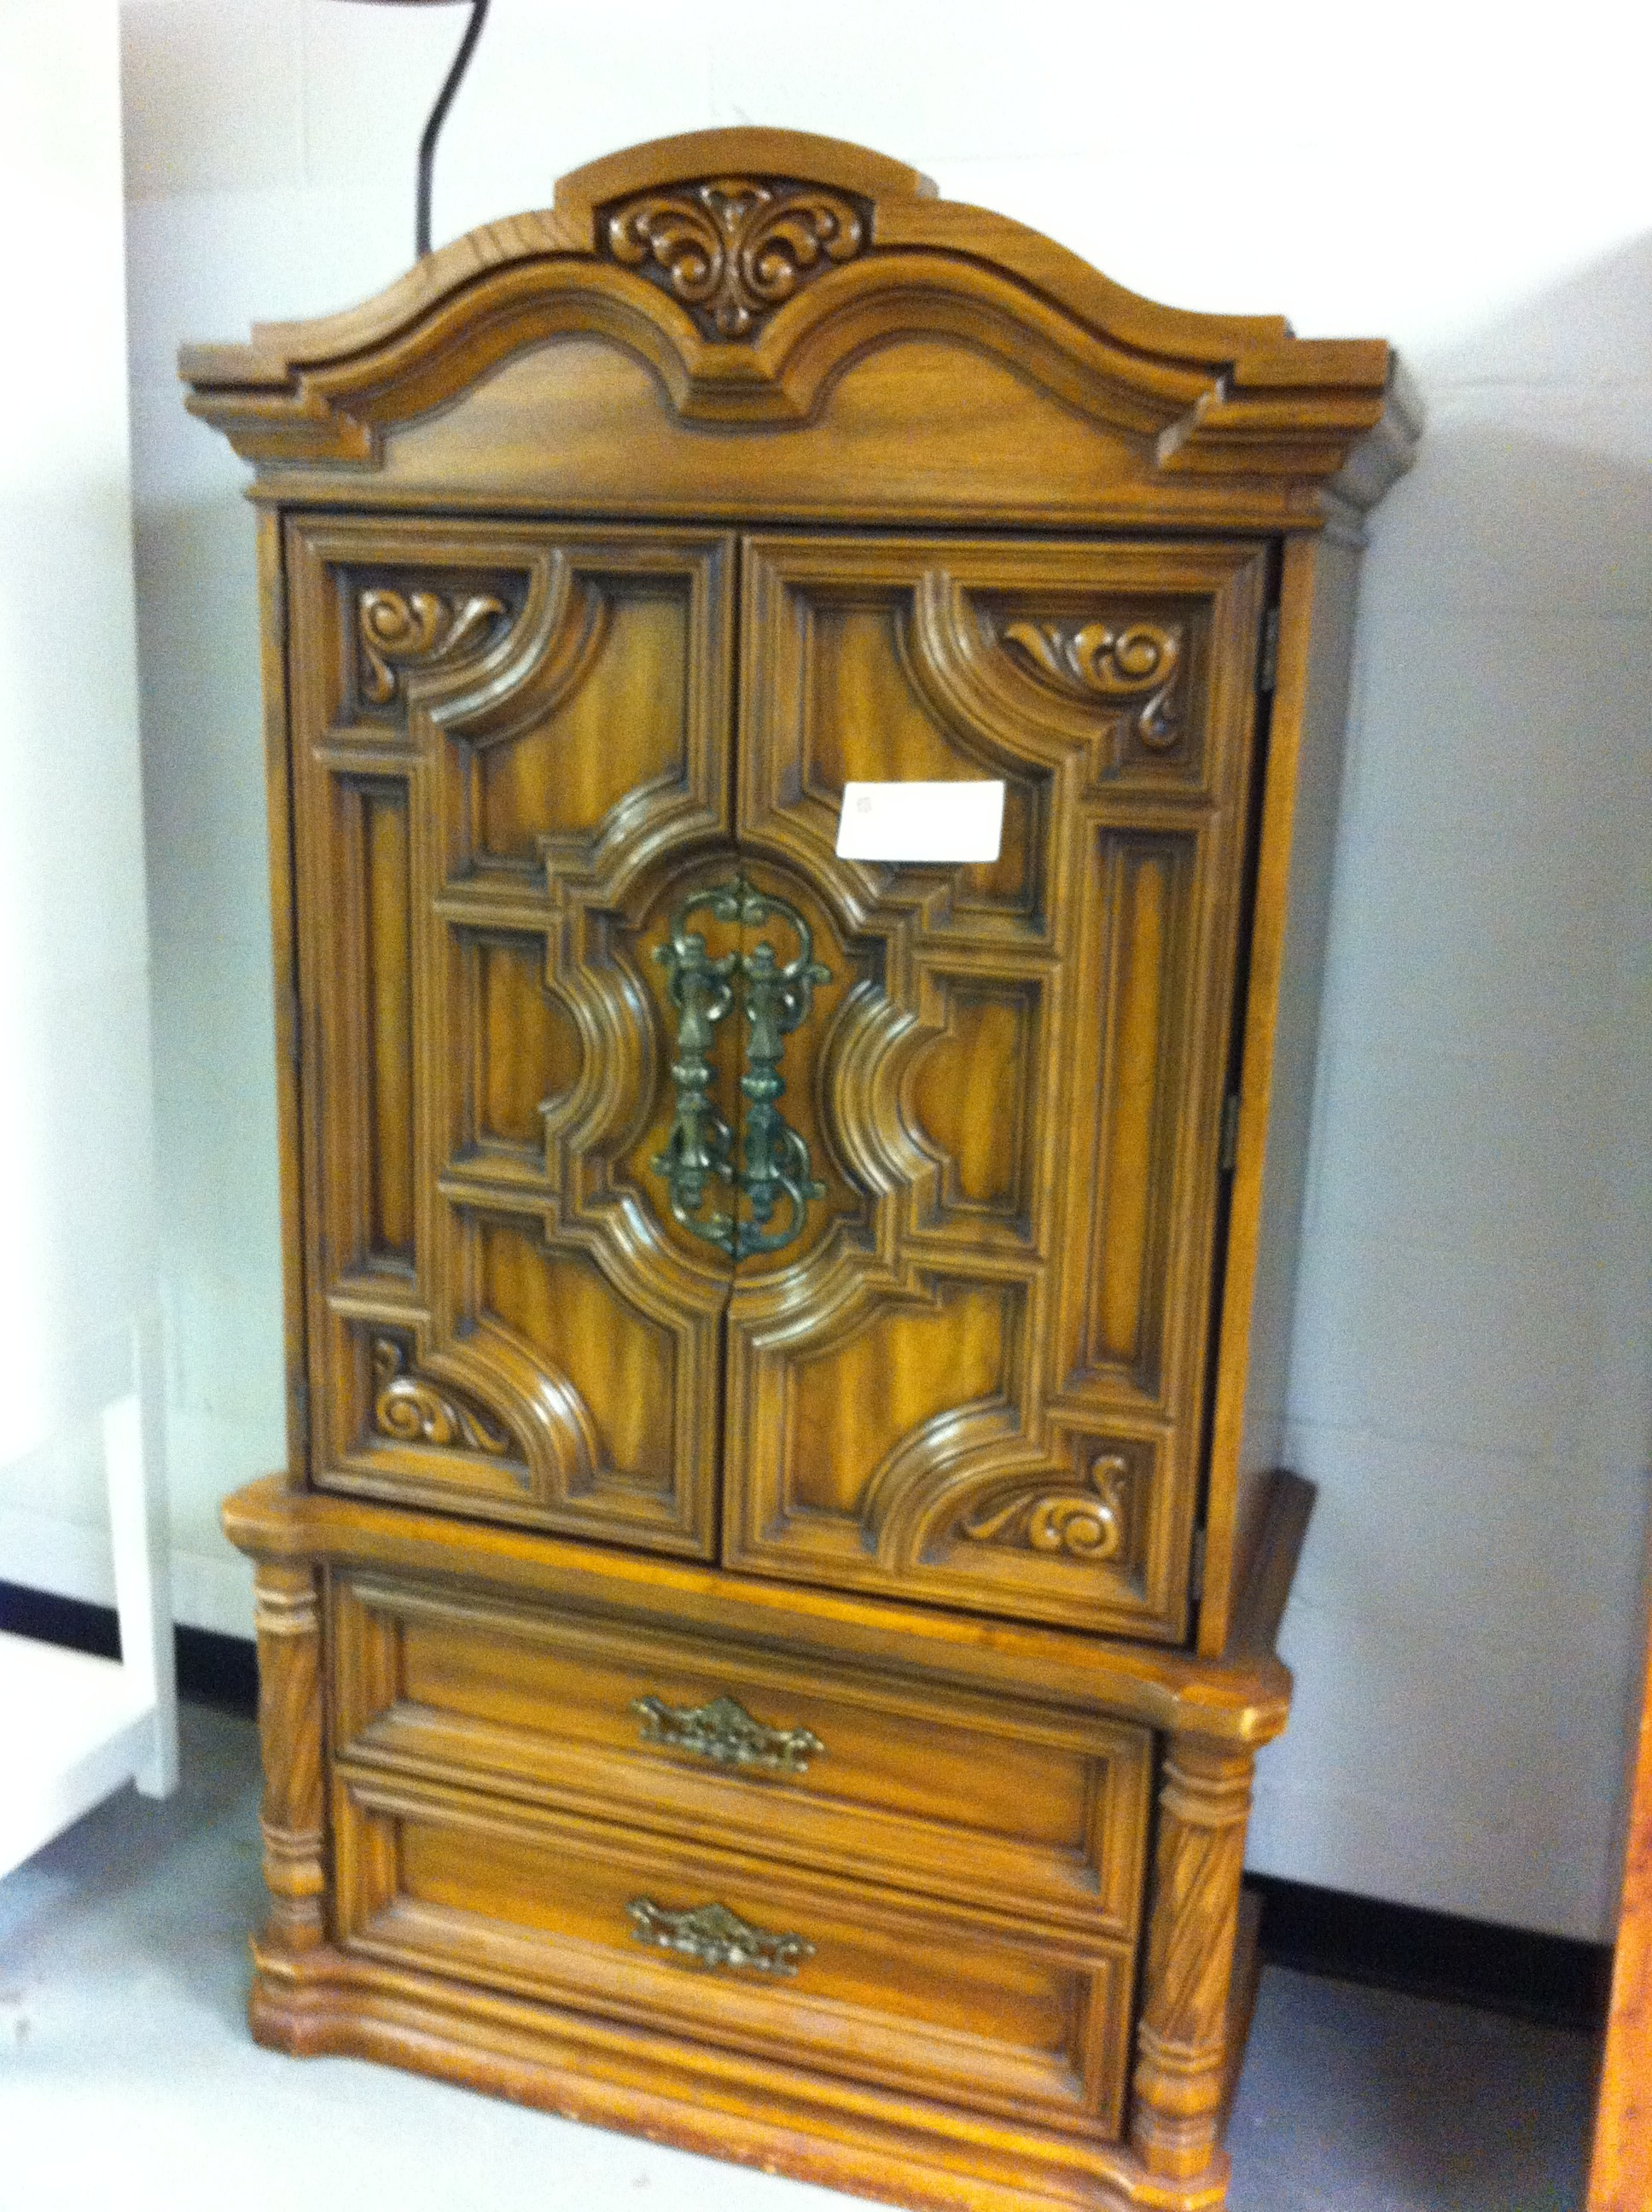 An image of an armoire from the Salvation Army